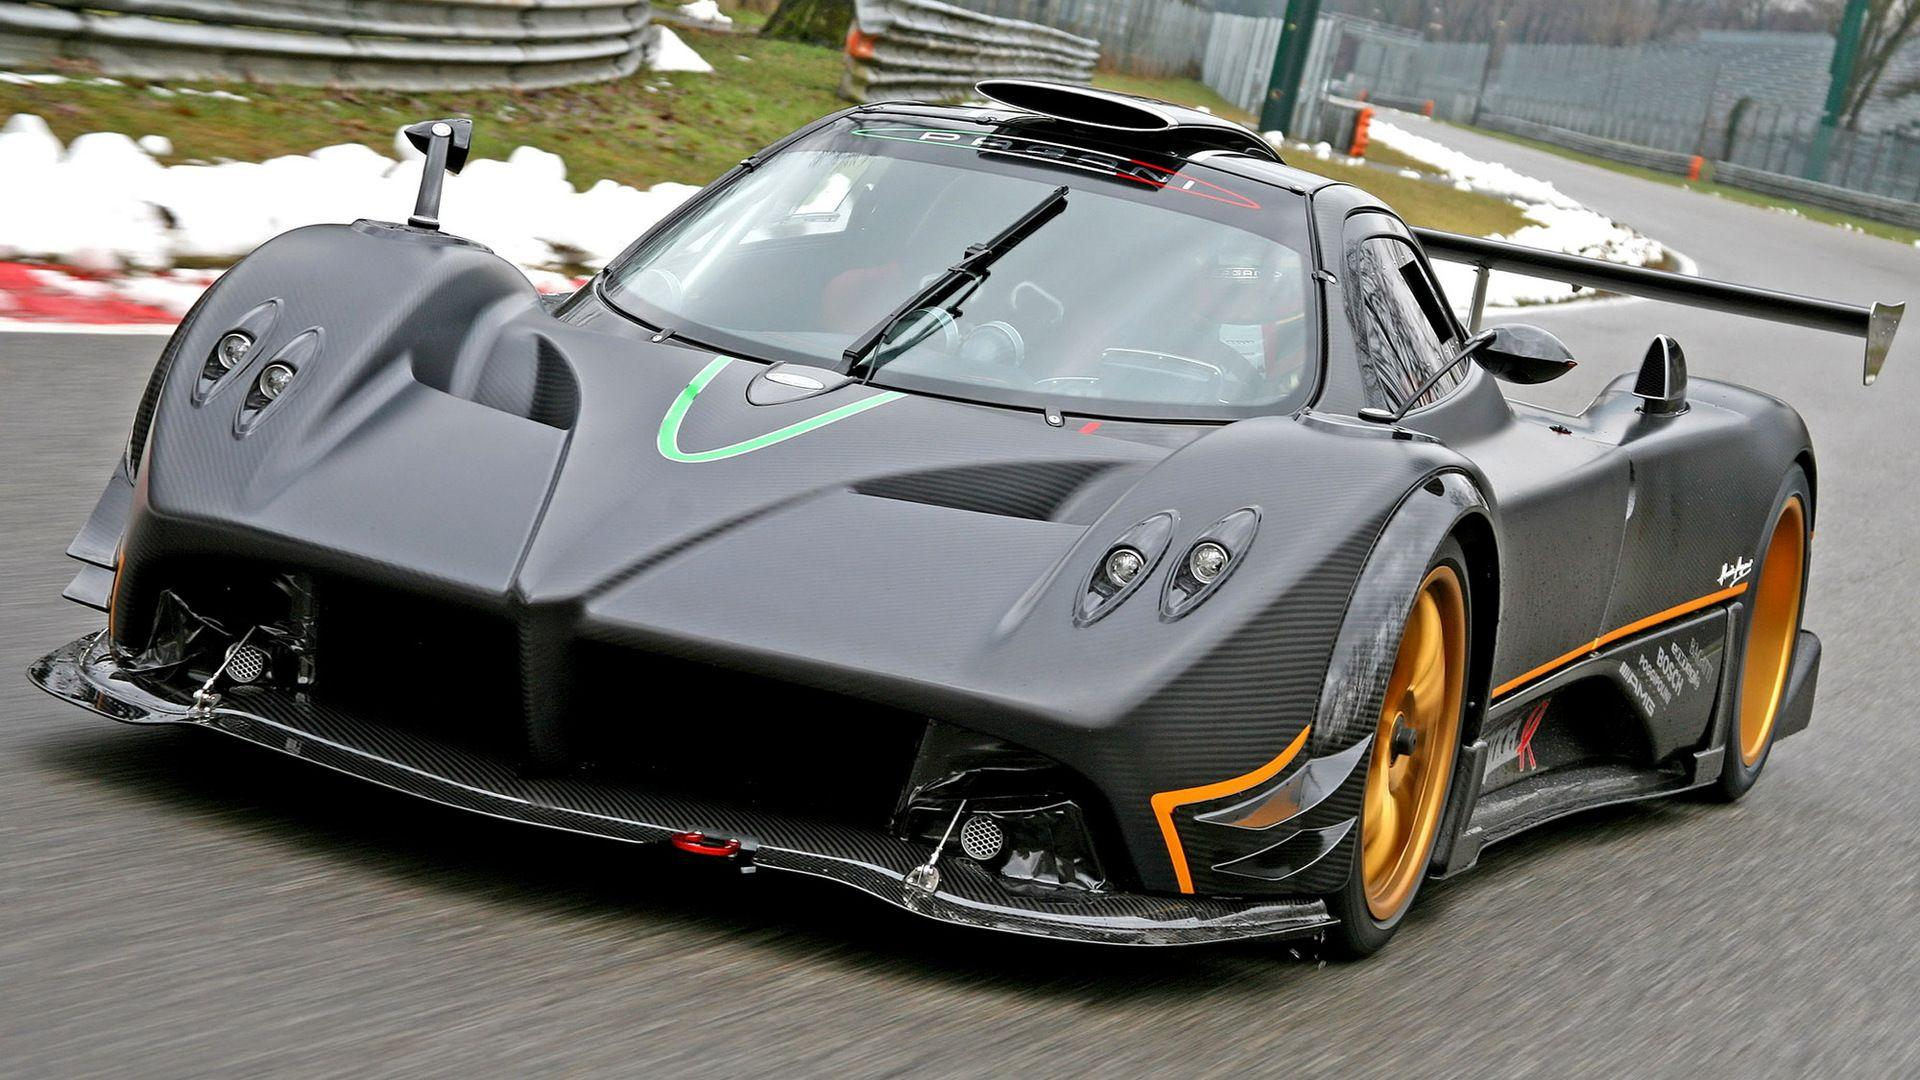 Pagani Zonda R (2009) Wallpapers and HD Images - Car Pixel